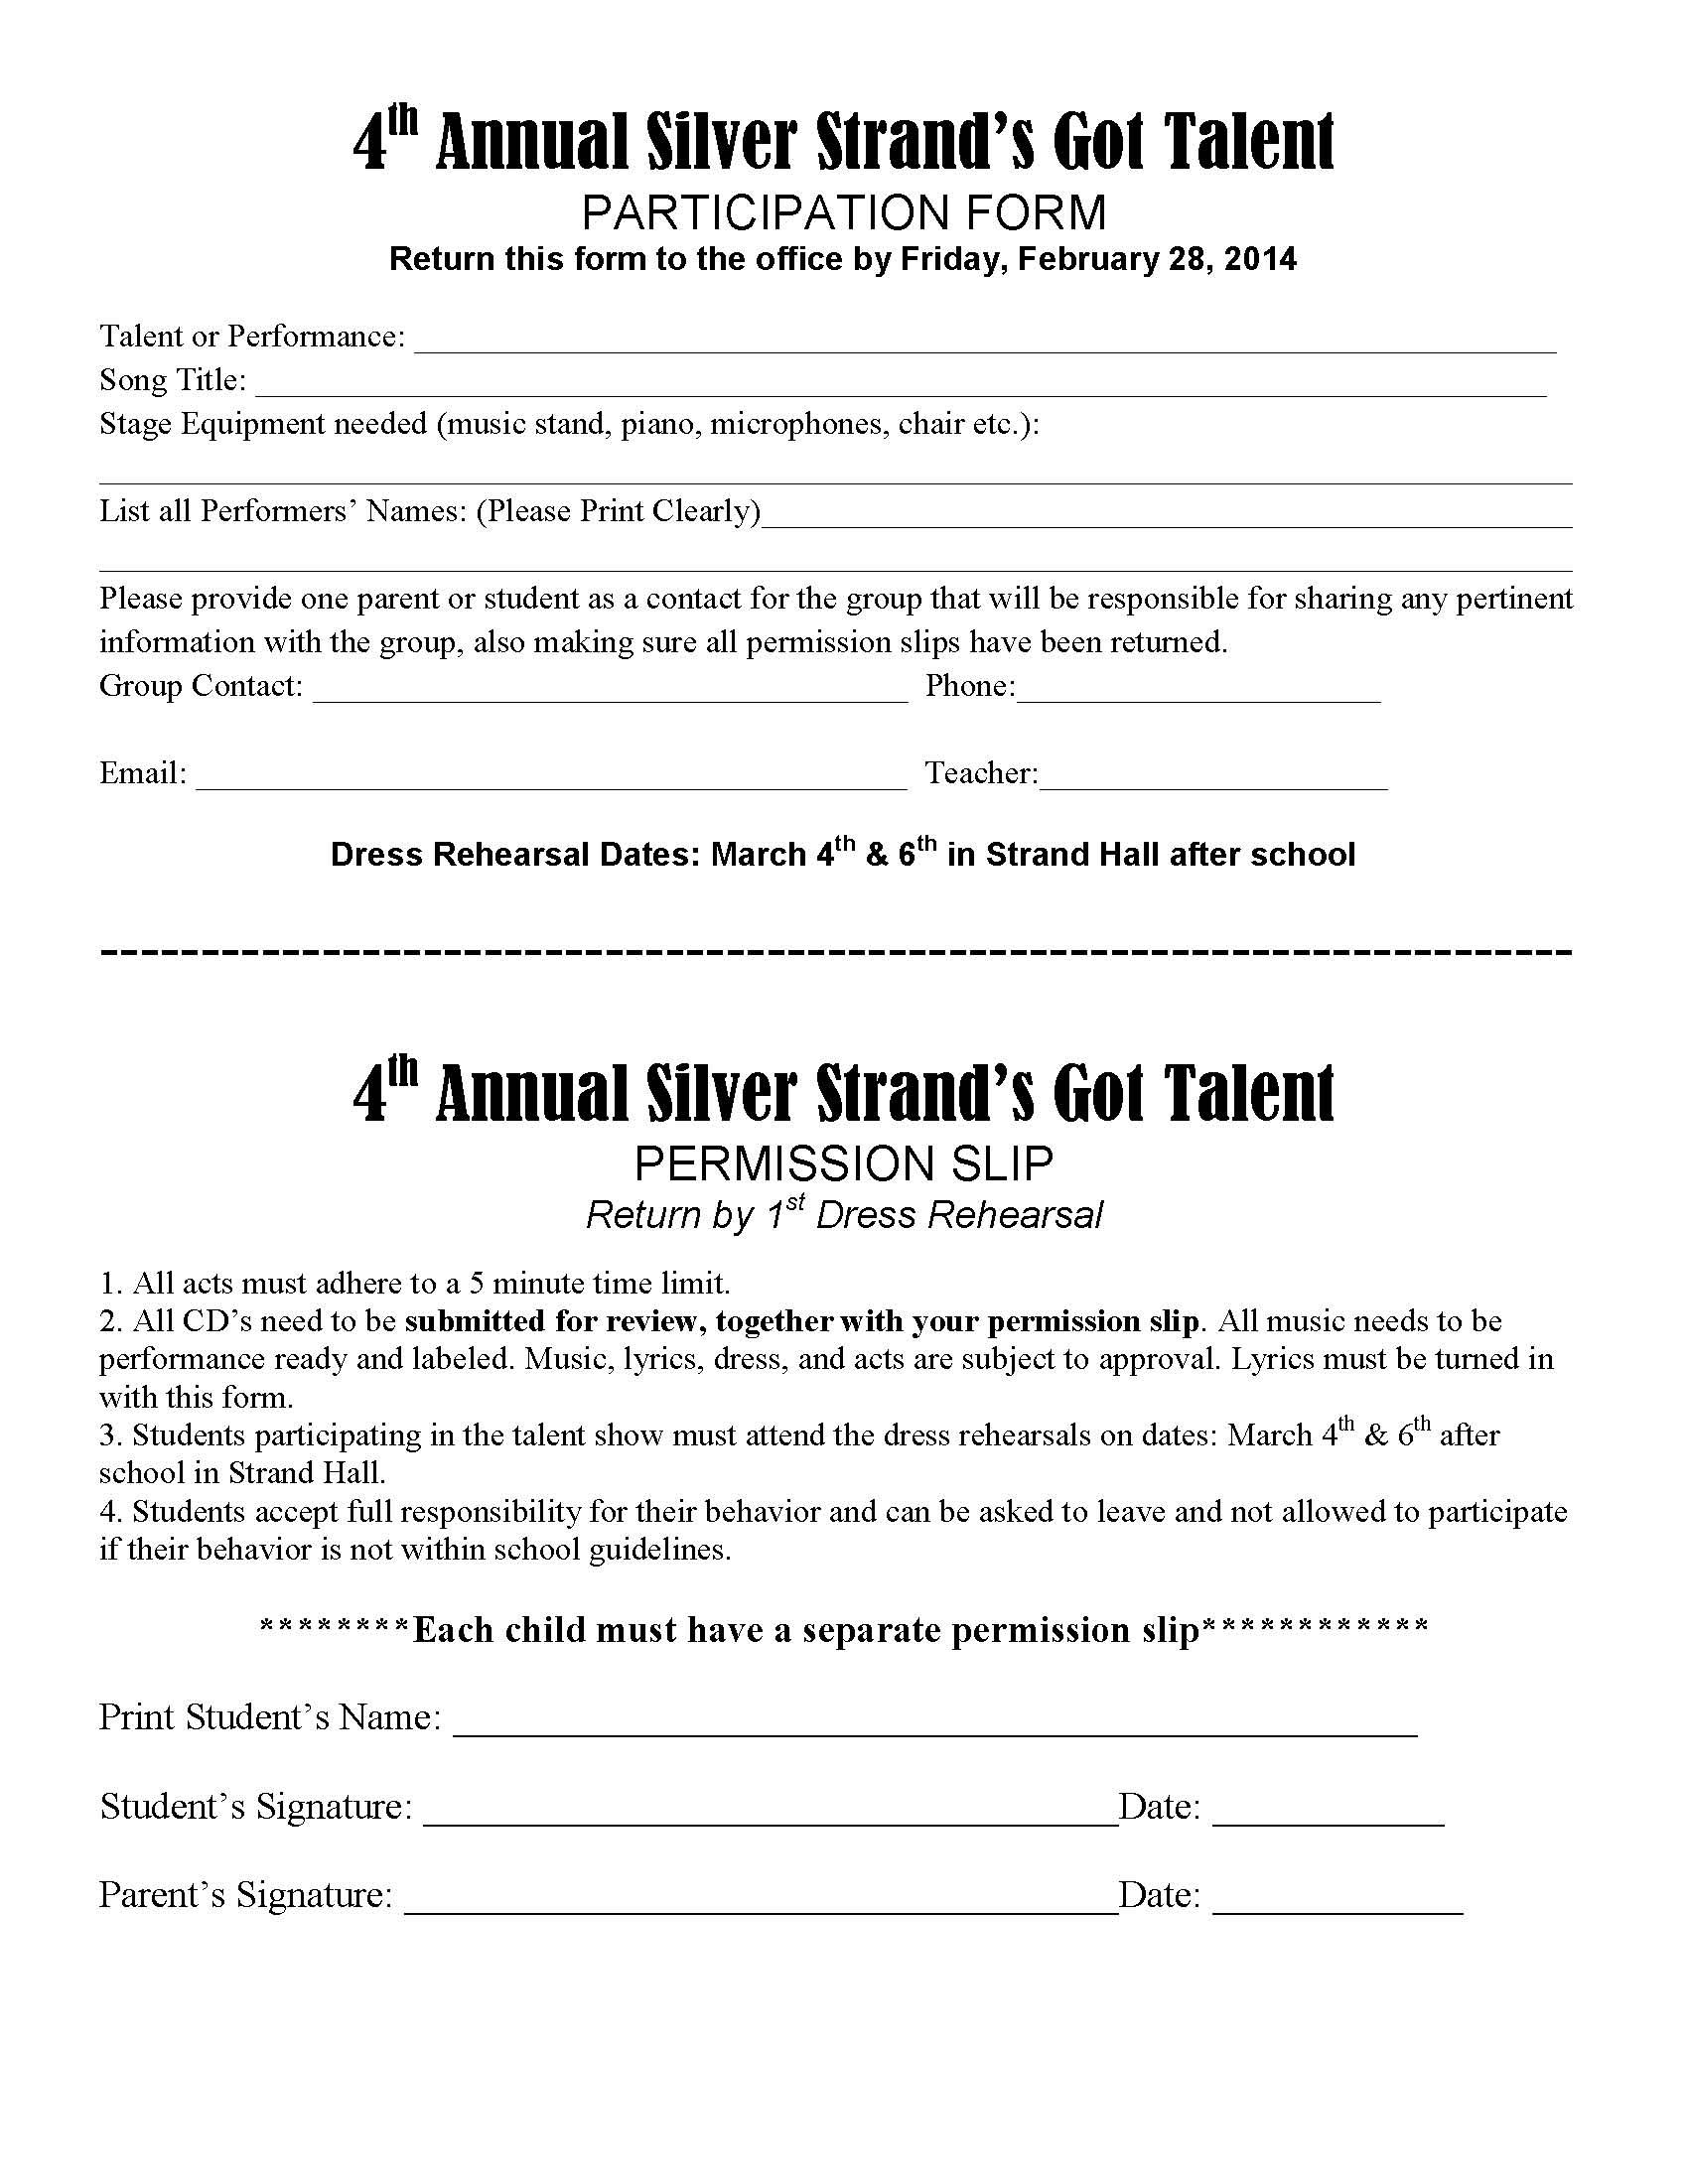 Silver Strand Elementary Talent Show Permission Slip Deadline